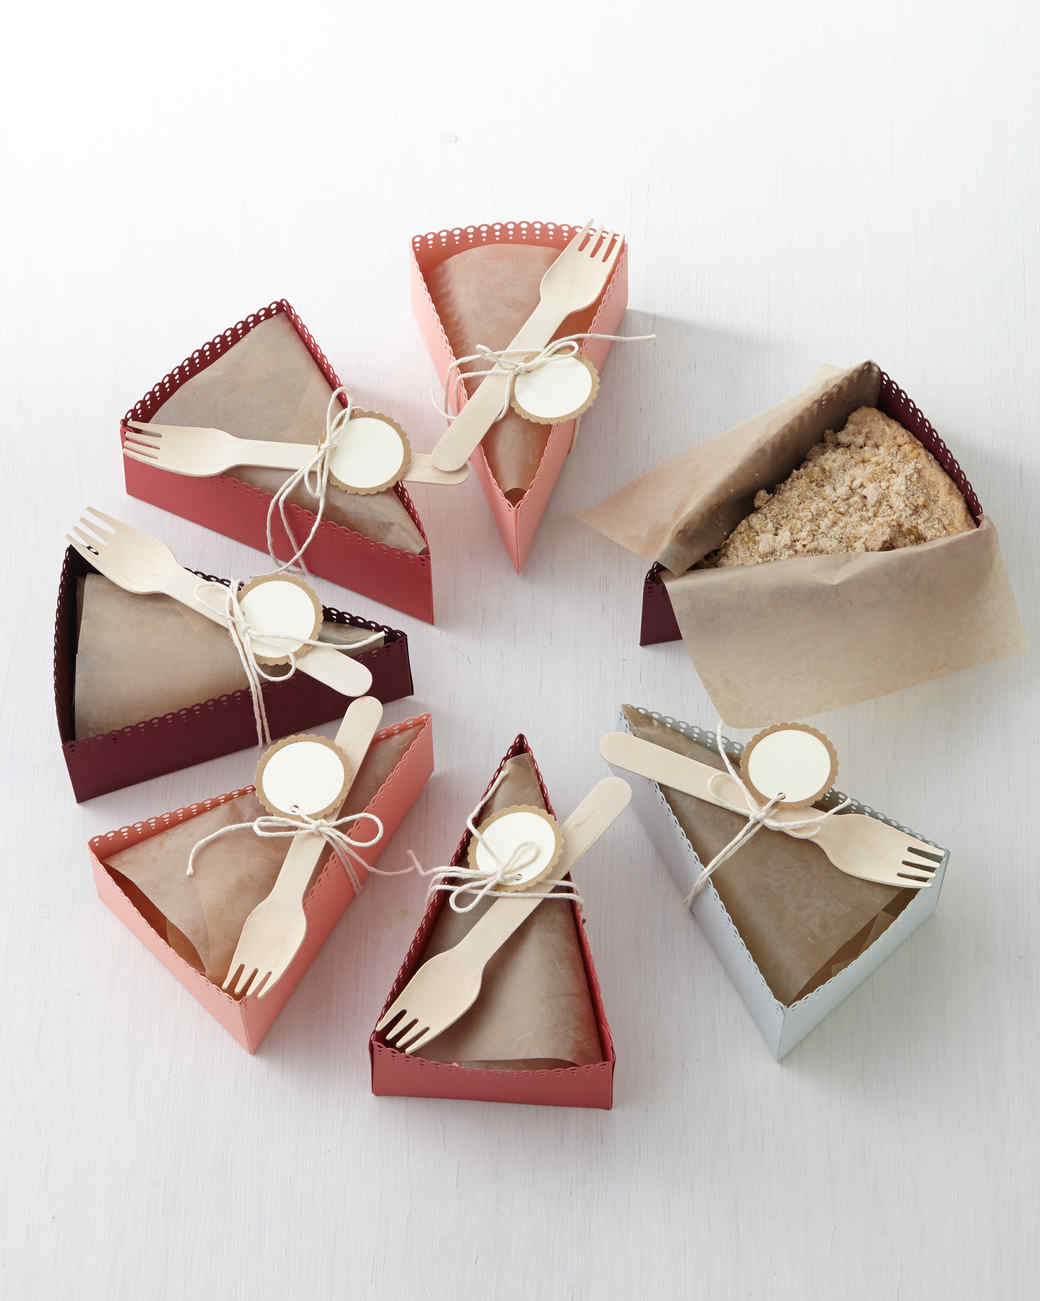 DIY Paper Pie Slice Boxes Martha Stewart